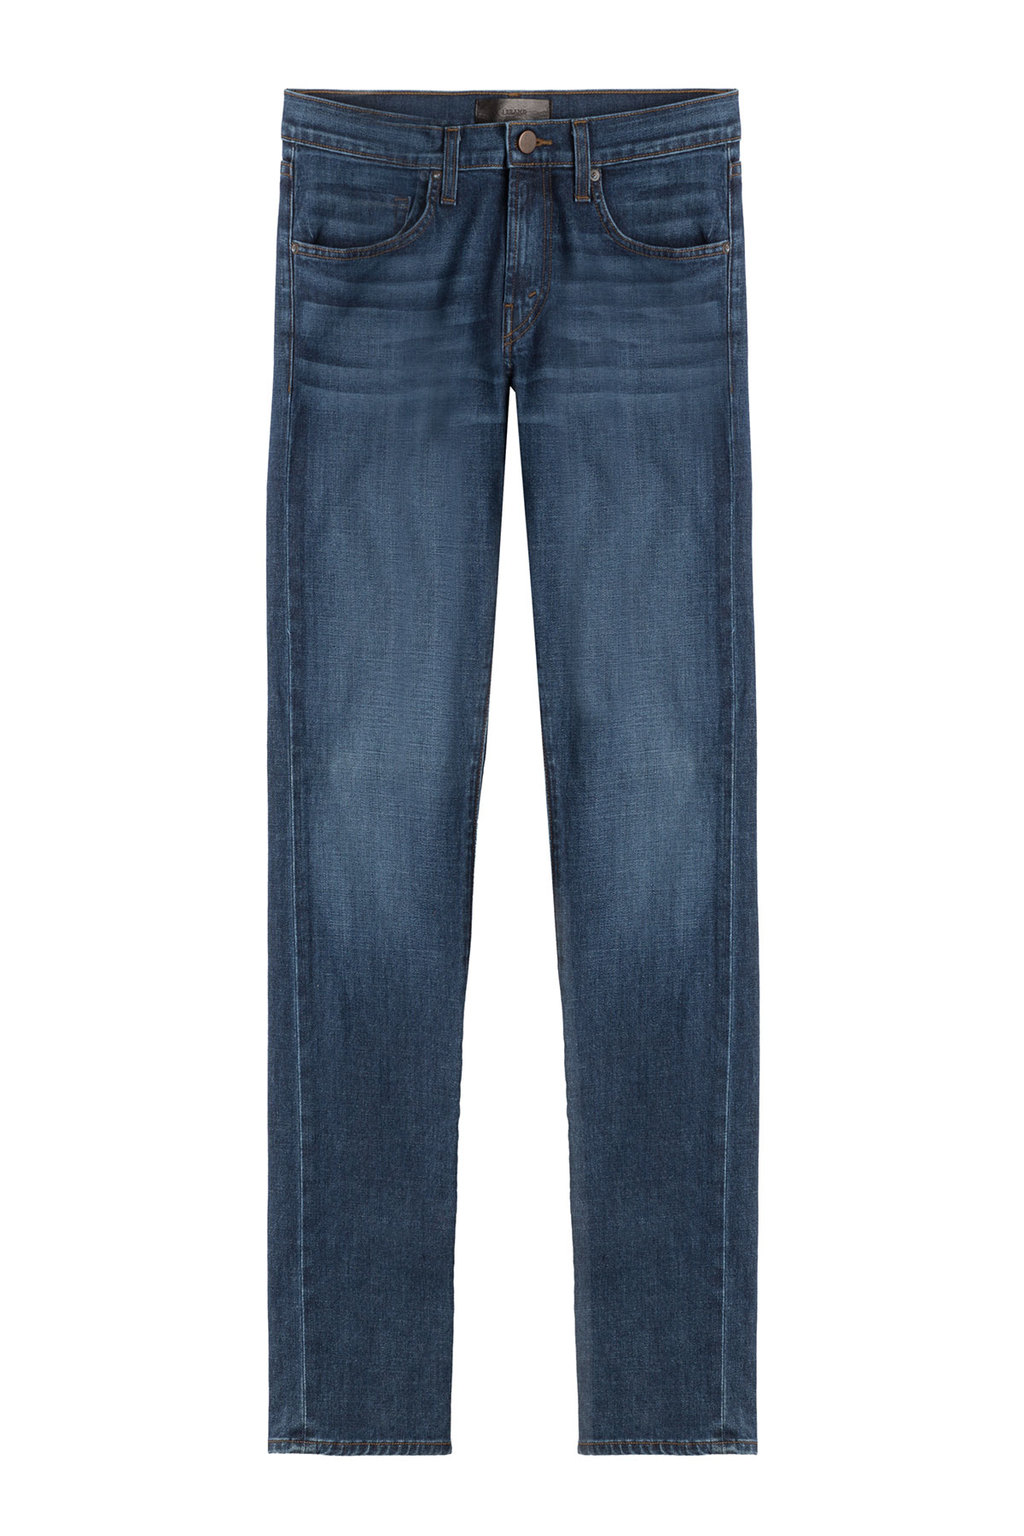 Straight Leg Jeans Blue - style: straight leg; length: standard; pattern: plain; pocket detail: traditional 5 pocket; waist: mid/regular rise; predominant colour: navy; occasions: casual; fibres: cotton - stretch; jeans detail: shading down centre of thigh; texture group: denim; pattern type: fabric; season: s/s 2016; wardrobe: basic